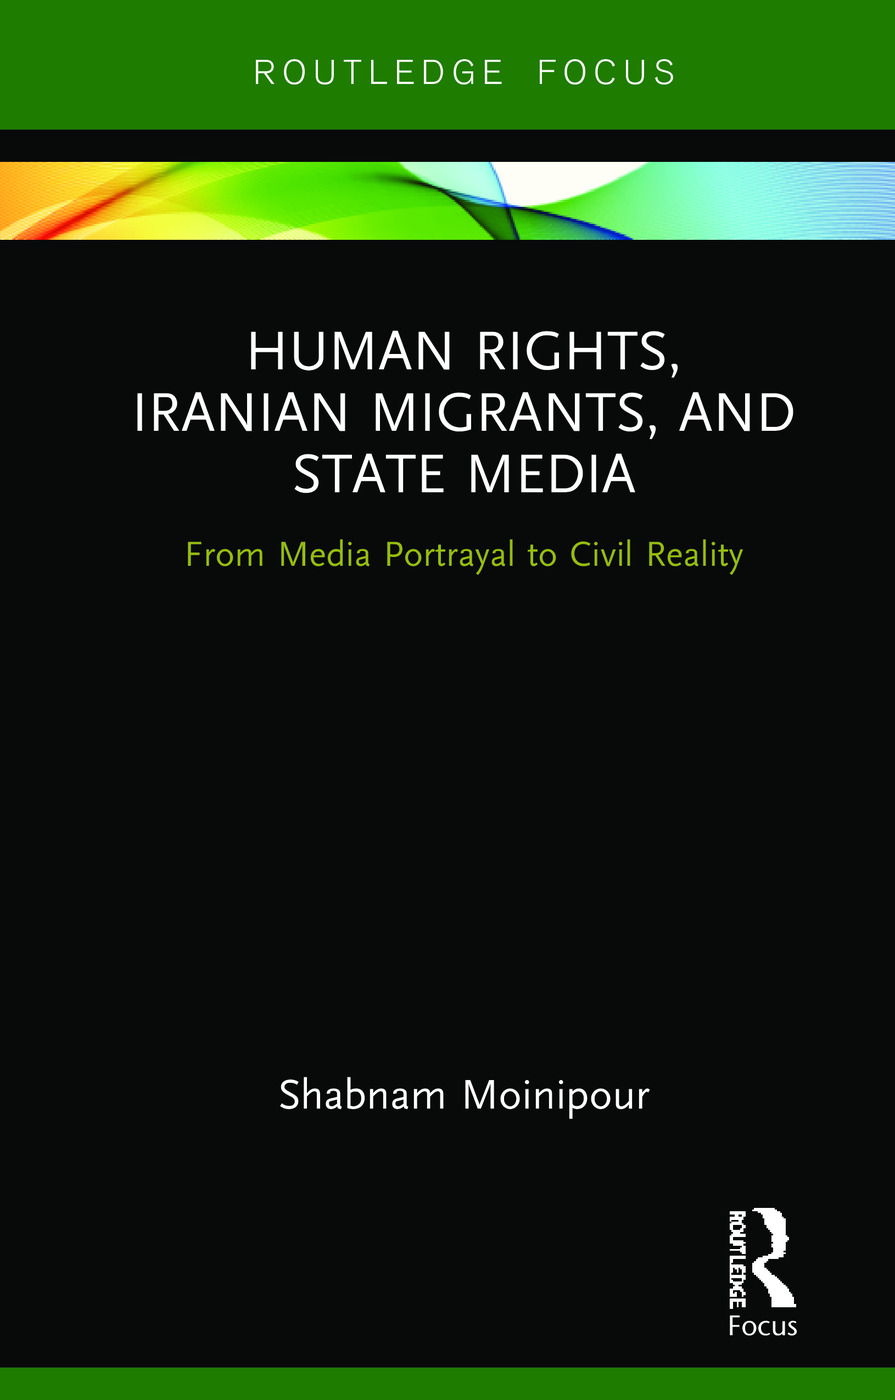 Human Rights, Iranian Migrants, and State Media: From Media Portrayal to Civil Reality book cover